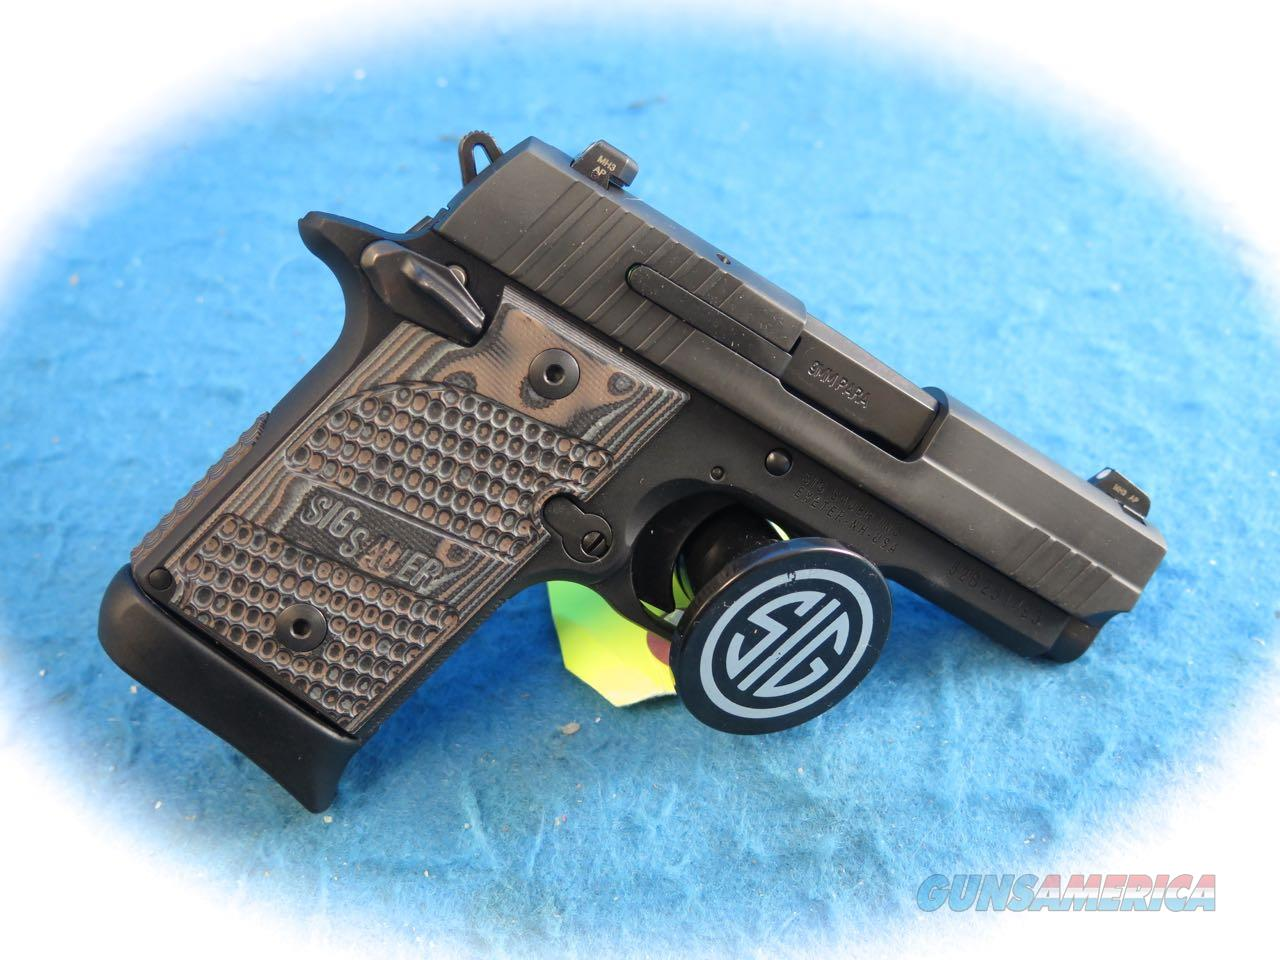 Sig Sauer P938 Extreme Micro-Compact 9mm Pistol Model 938-9-XTM-BLKGRY-AMBI **New**  Guns > Pistols > Sig - Sauer/Sigarms Pistols > P938